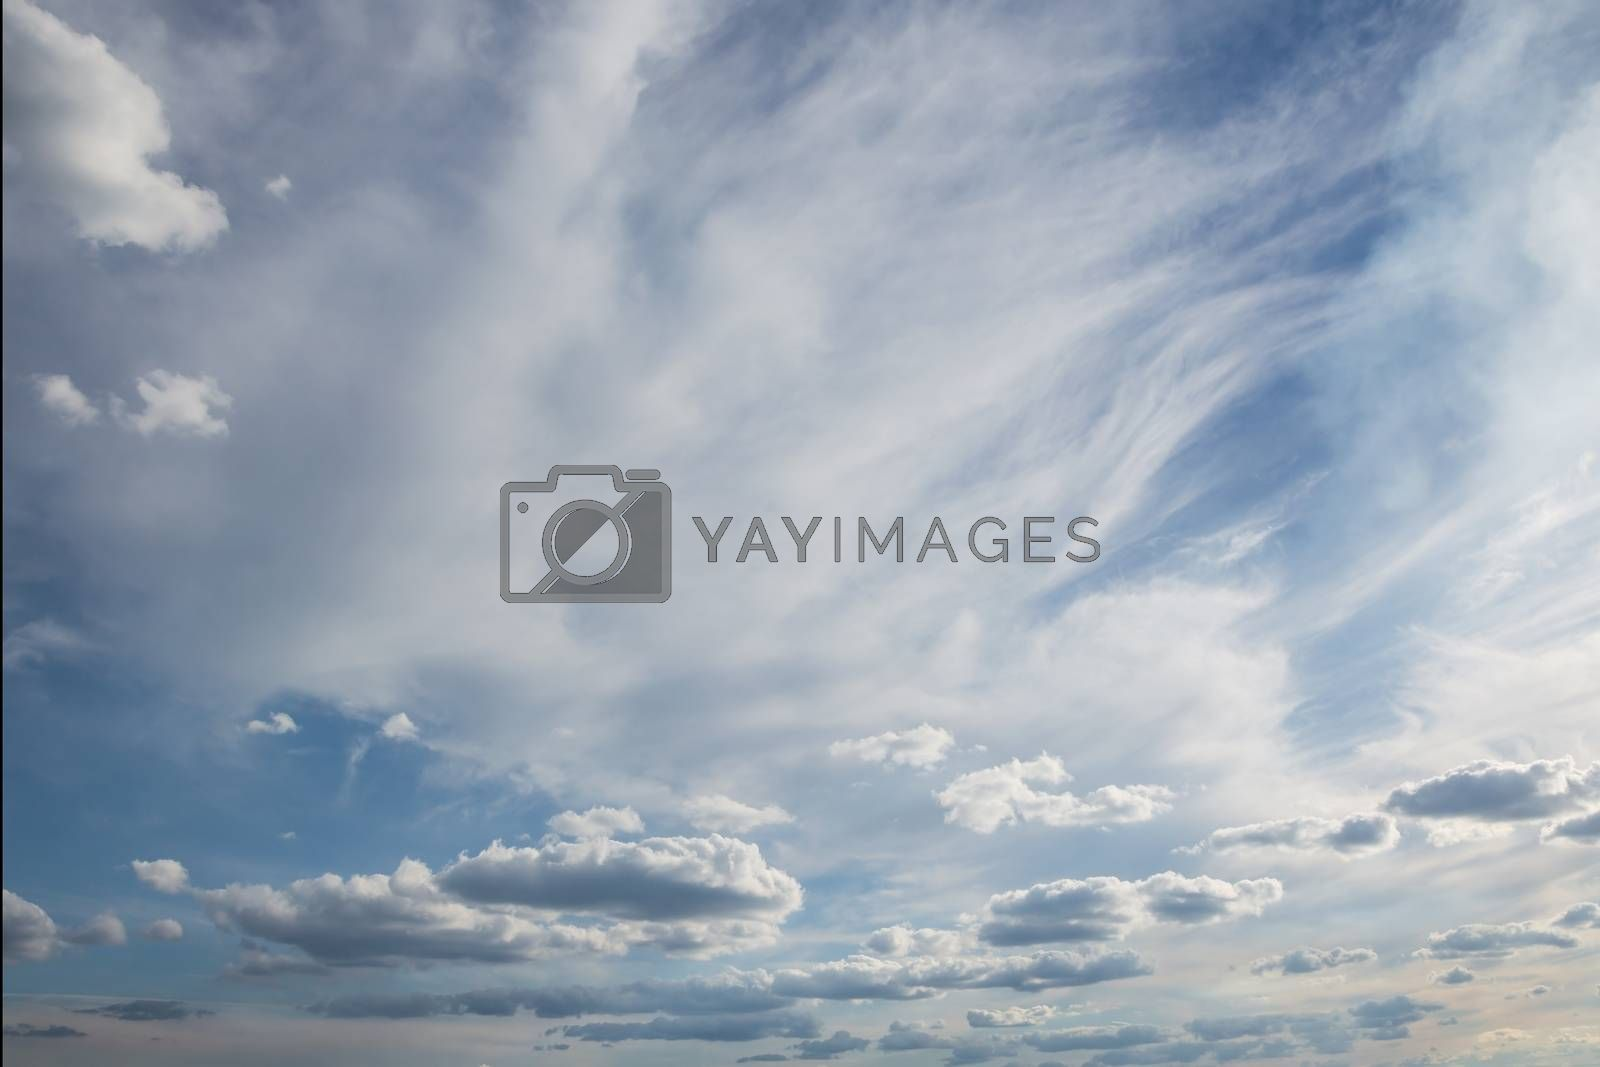 Royalty free image of sky with clouds by firewings